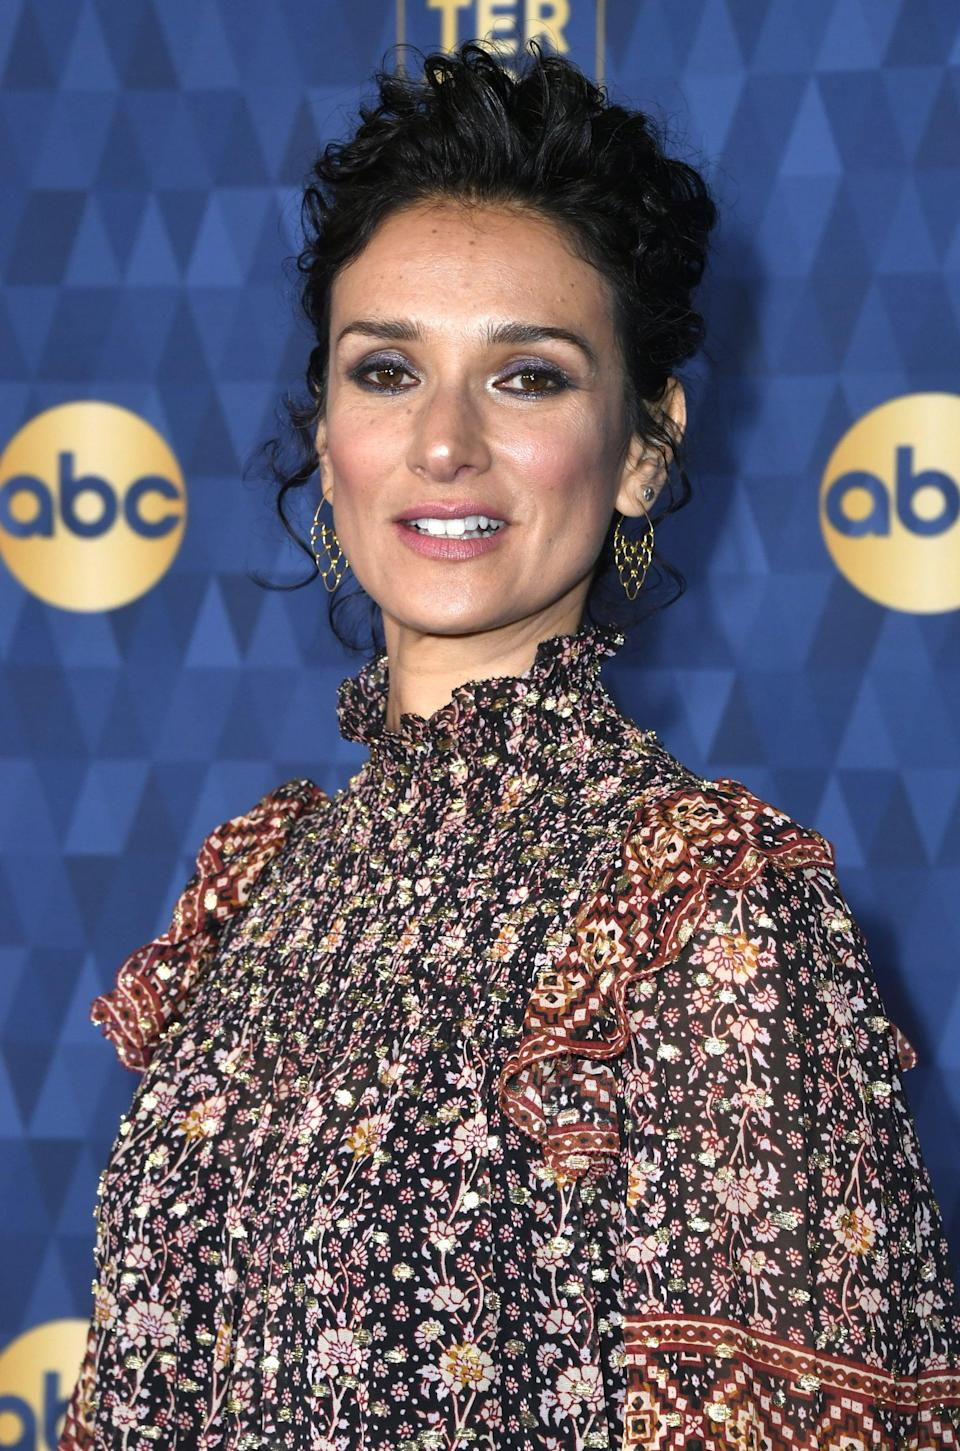 <p>Varma has spent her fair share of time in sci-fi and fantasy projects, including <strong>Torchwood</strong>, <strong>Carnival Row</strong>, and, most memorably, as Ellaria Sand on <strong>Game of Thrones</strong>. Most recently, you can see her on the legal drama <strong>For Life</strong>.</p>